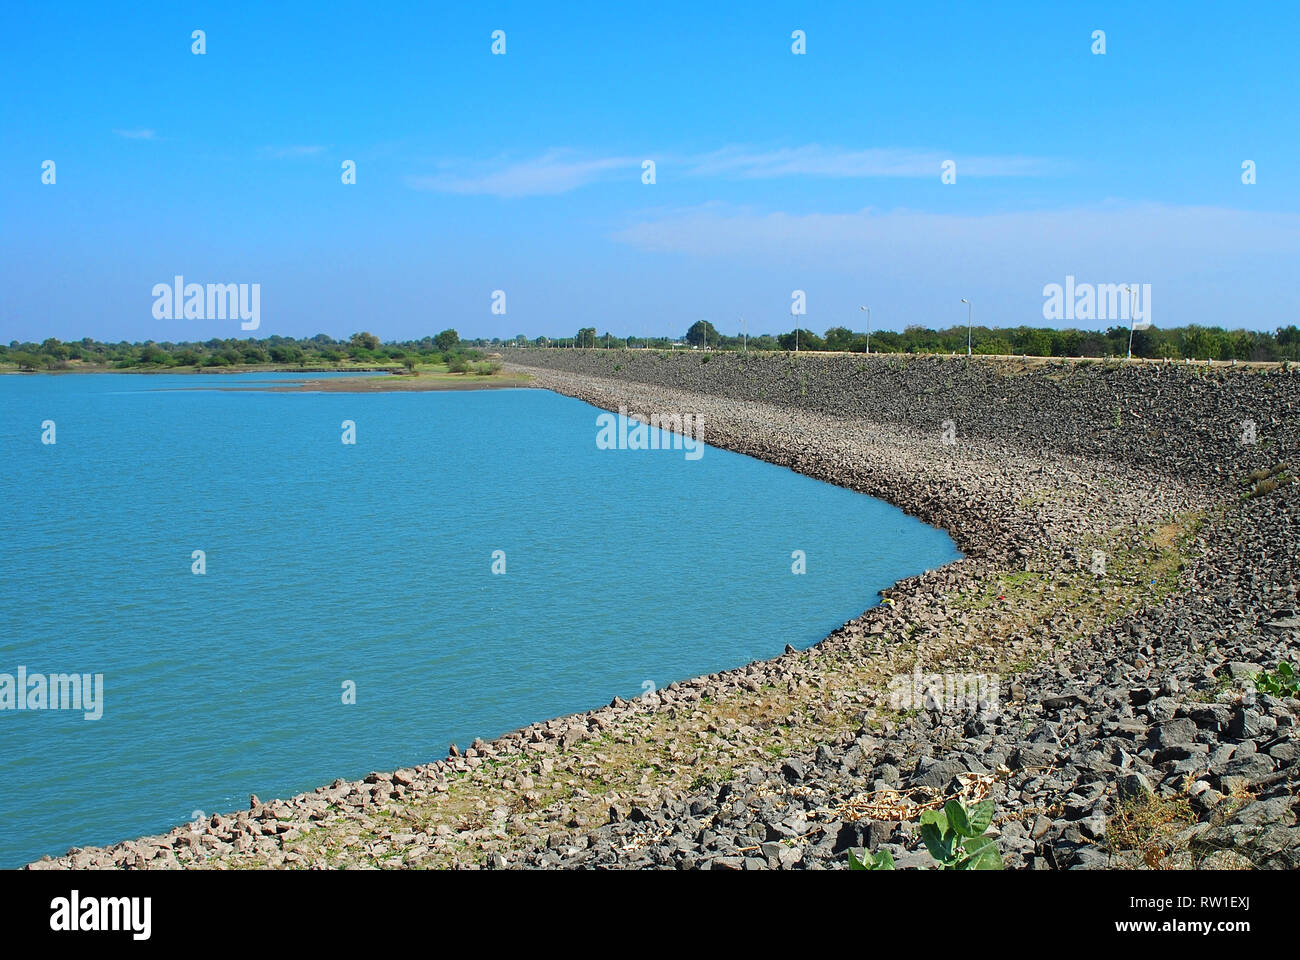 This lake is amazing landscape in my city amreli its looking